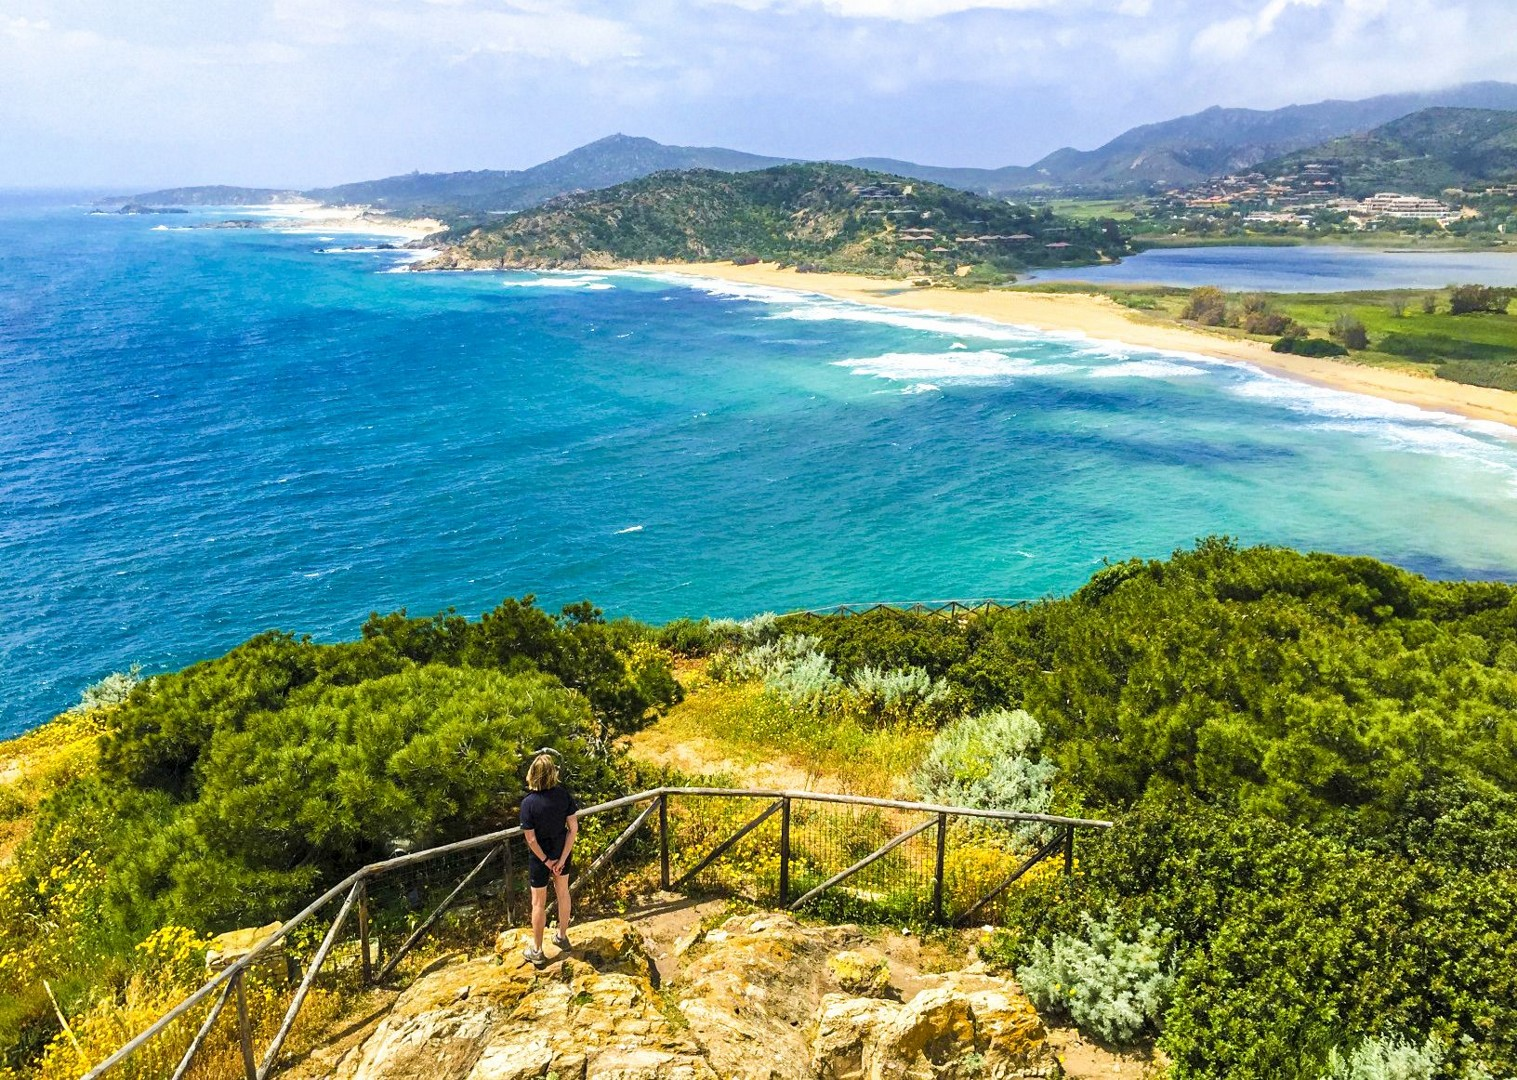 From Chia Towerjpg-2.jpg - Italy - Sardinia - Island Flavours - Italia Leisure and Family Cycling